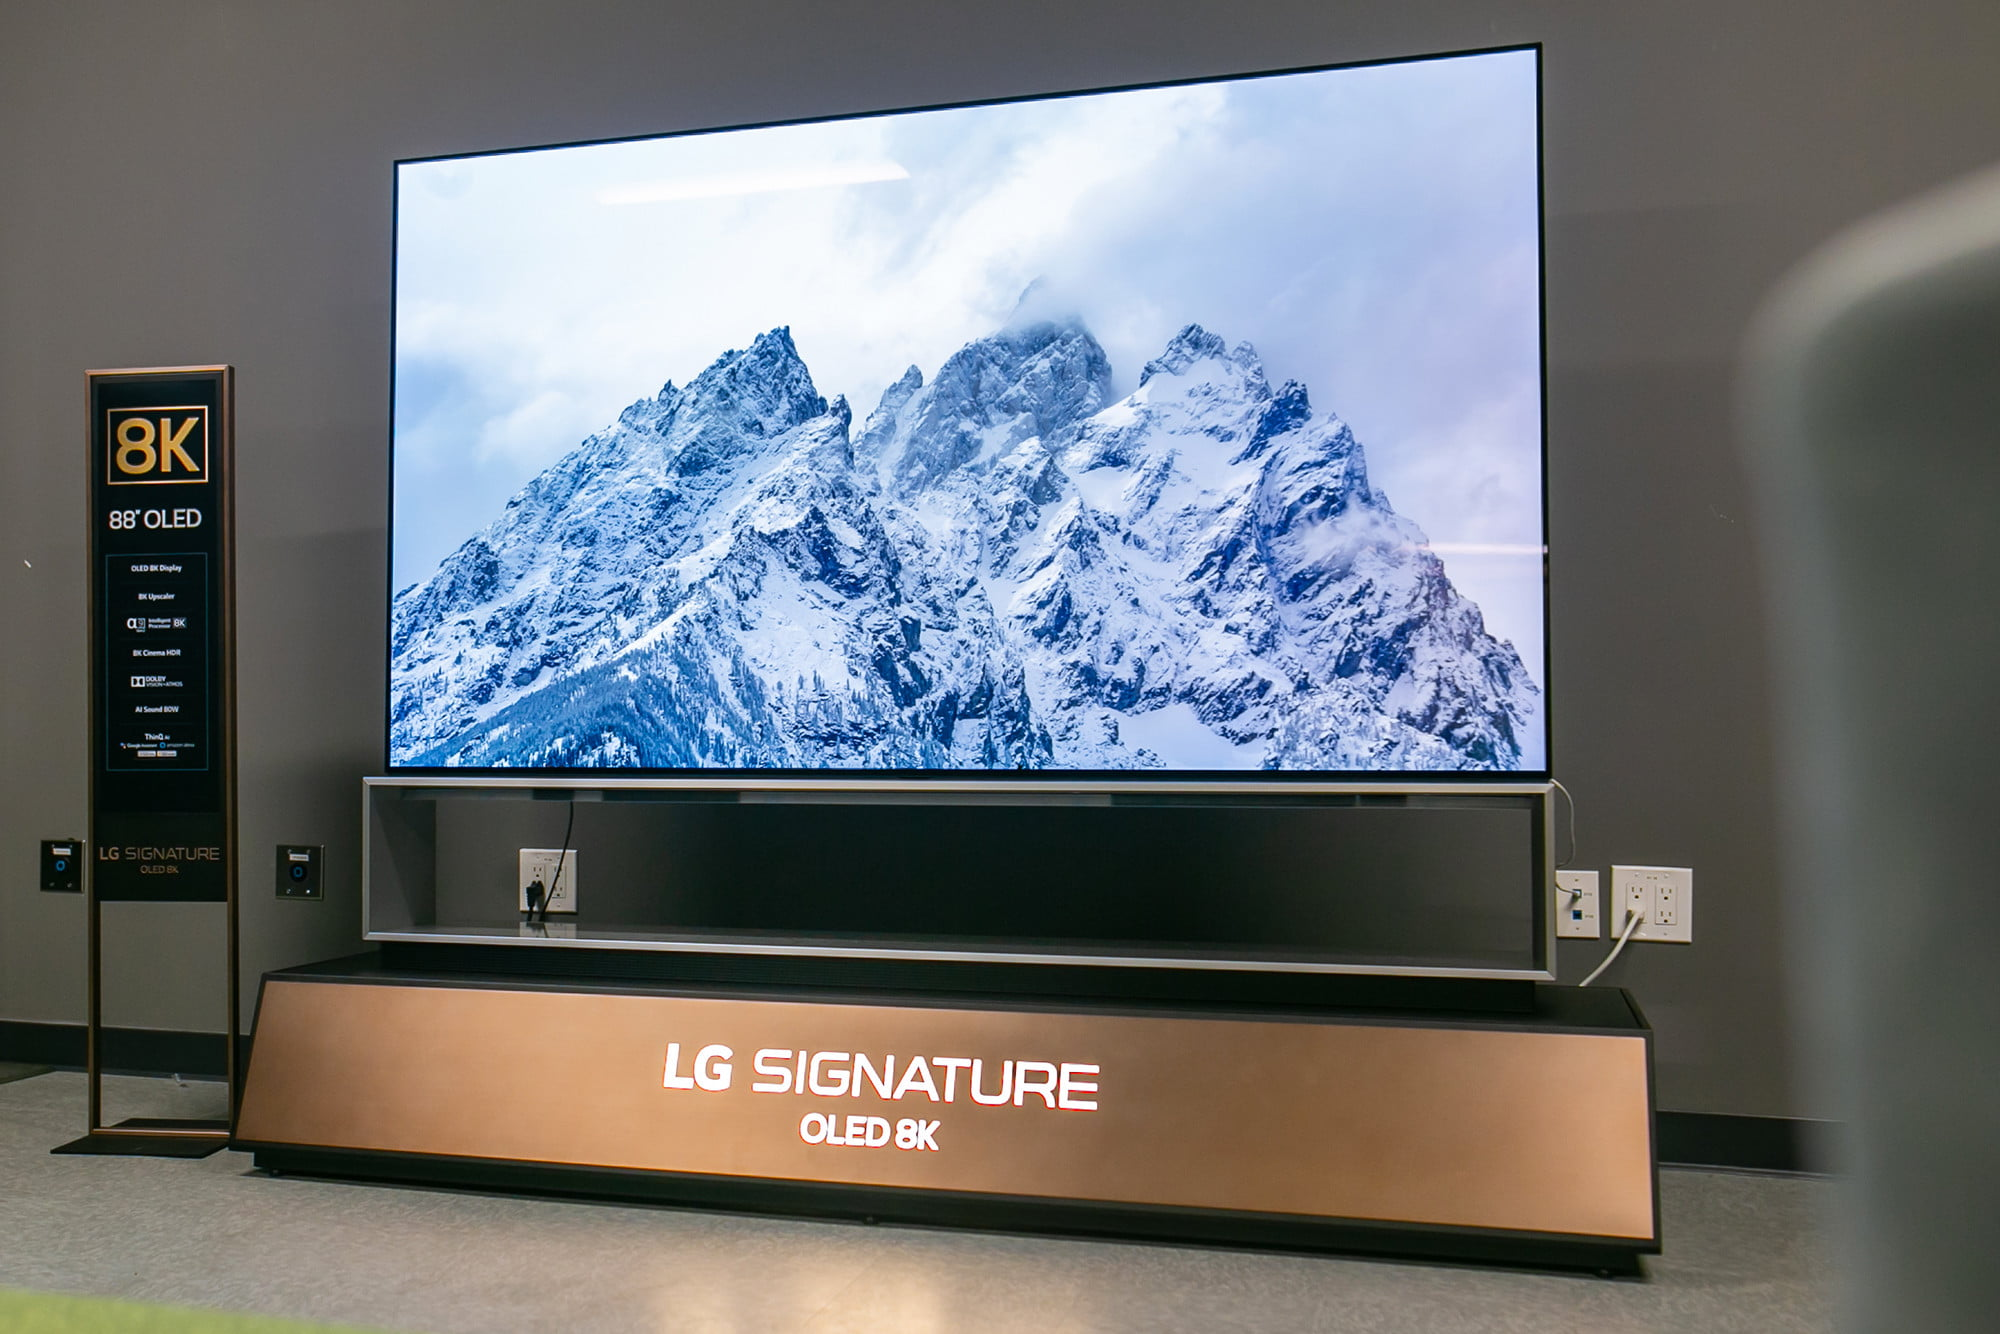 LG Z9 88-inch 8K HDR OLED TV review: The future of television